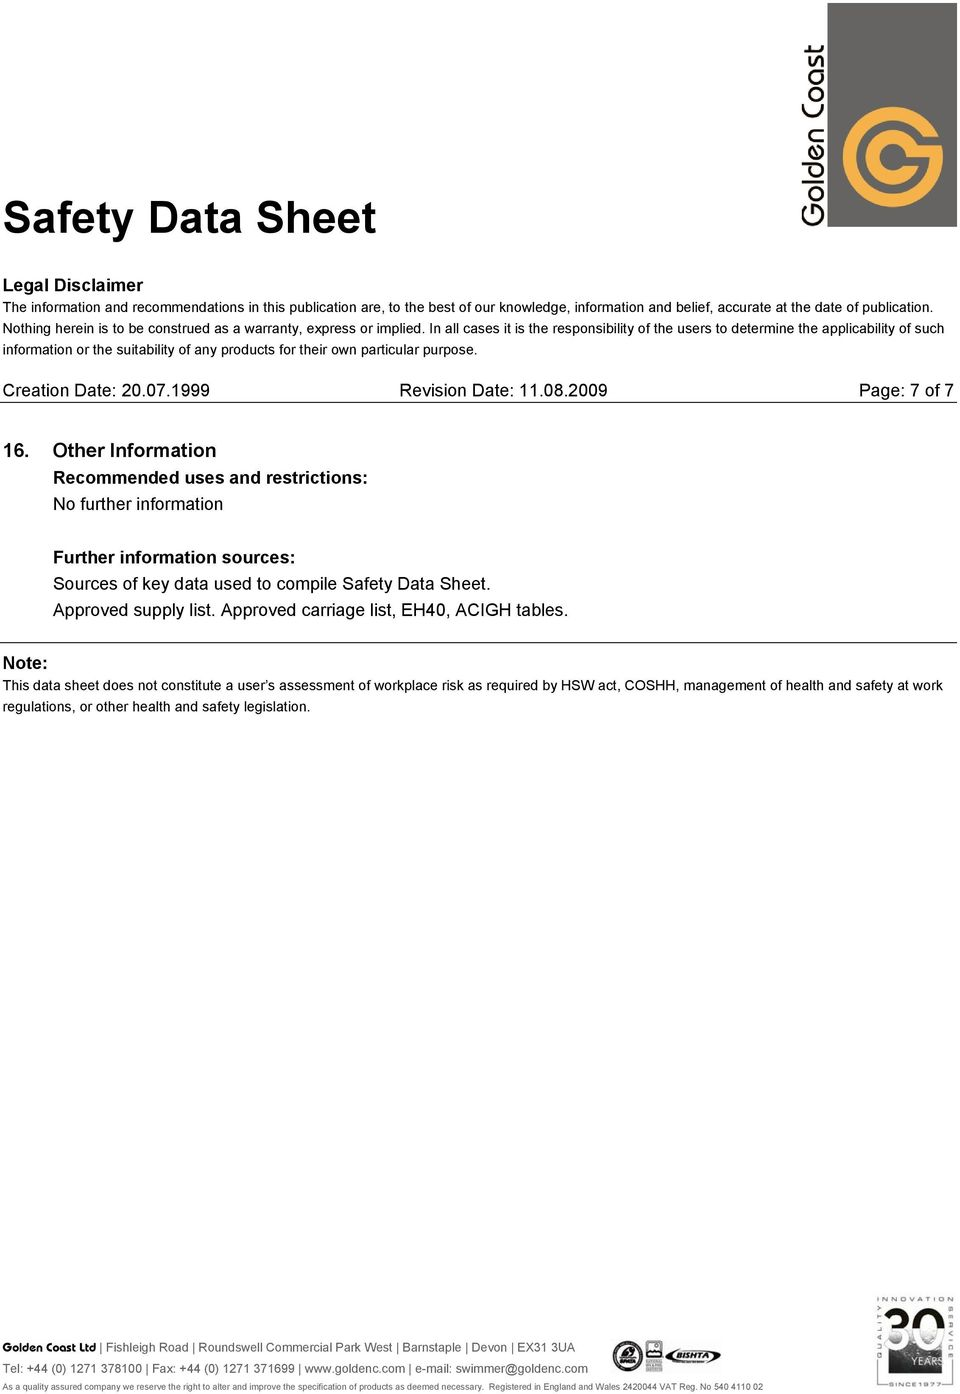 used to compile Safety Data Sheet. Approved supply list. Approved carriage list, EH40, ACIGH tables.